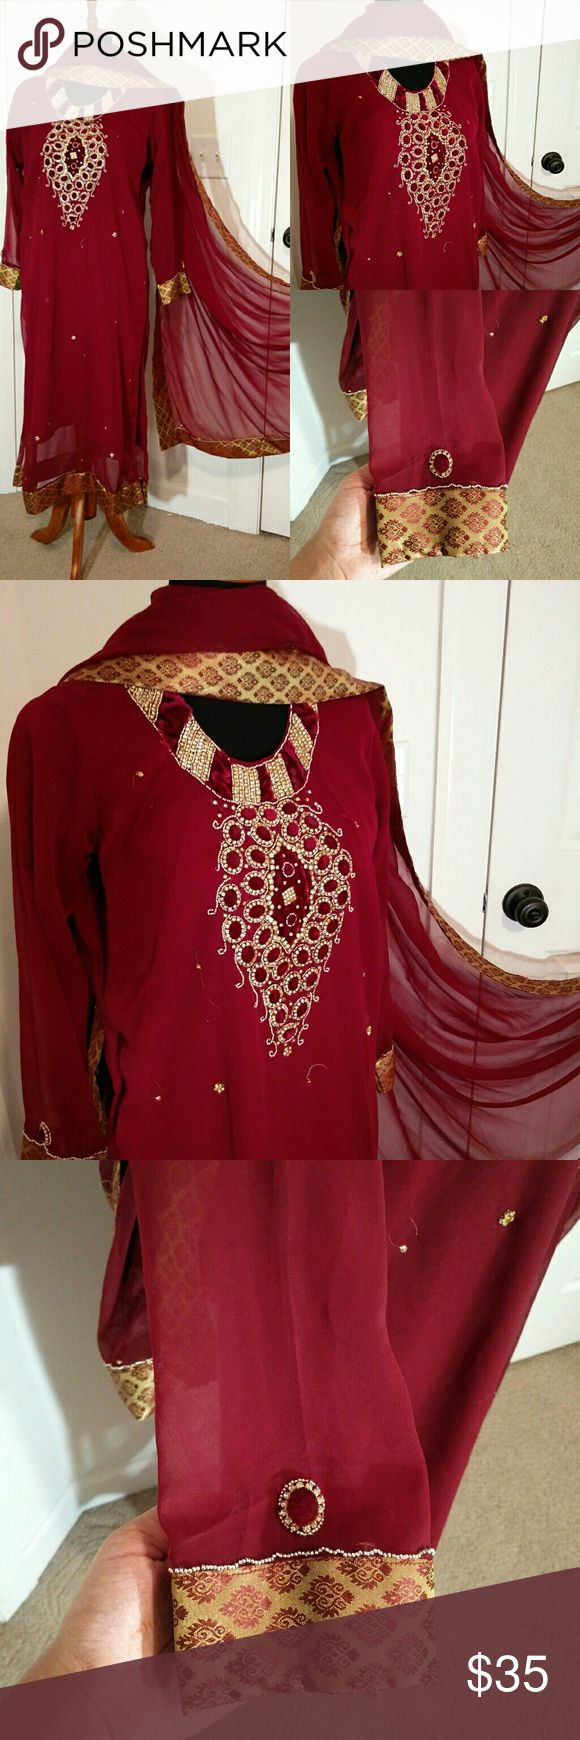 Indian Pakistani Maroon embroidered dress This is a beautiful dress perfect for this wedding season. The dress looks more pretty in person. Worn just once just the neck need to be fixed that can be seen in the picture other than that still looks new. Originally bought for $100 Comes with a dupatta/stole and shirt.  Please look at the measurements before buying.  Measurements : Length = 46.5 inches Sleeves = 21 inches Bust = 20 inches Dresses